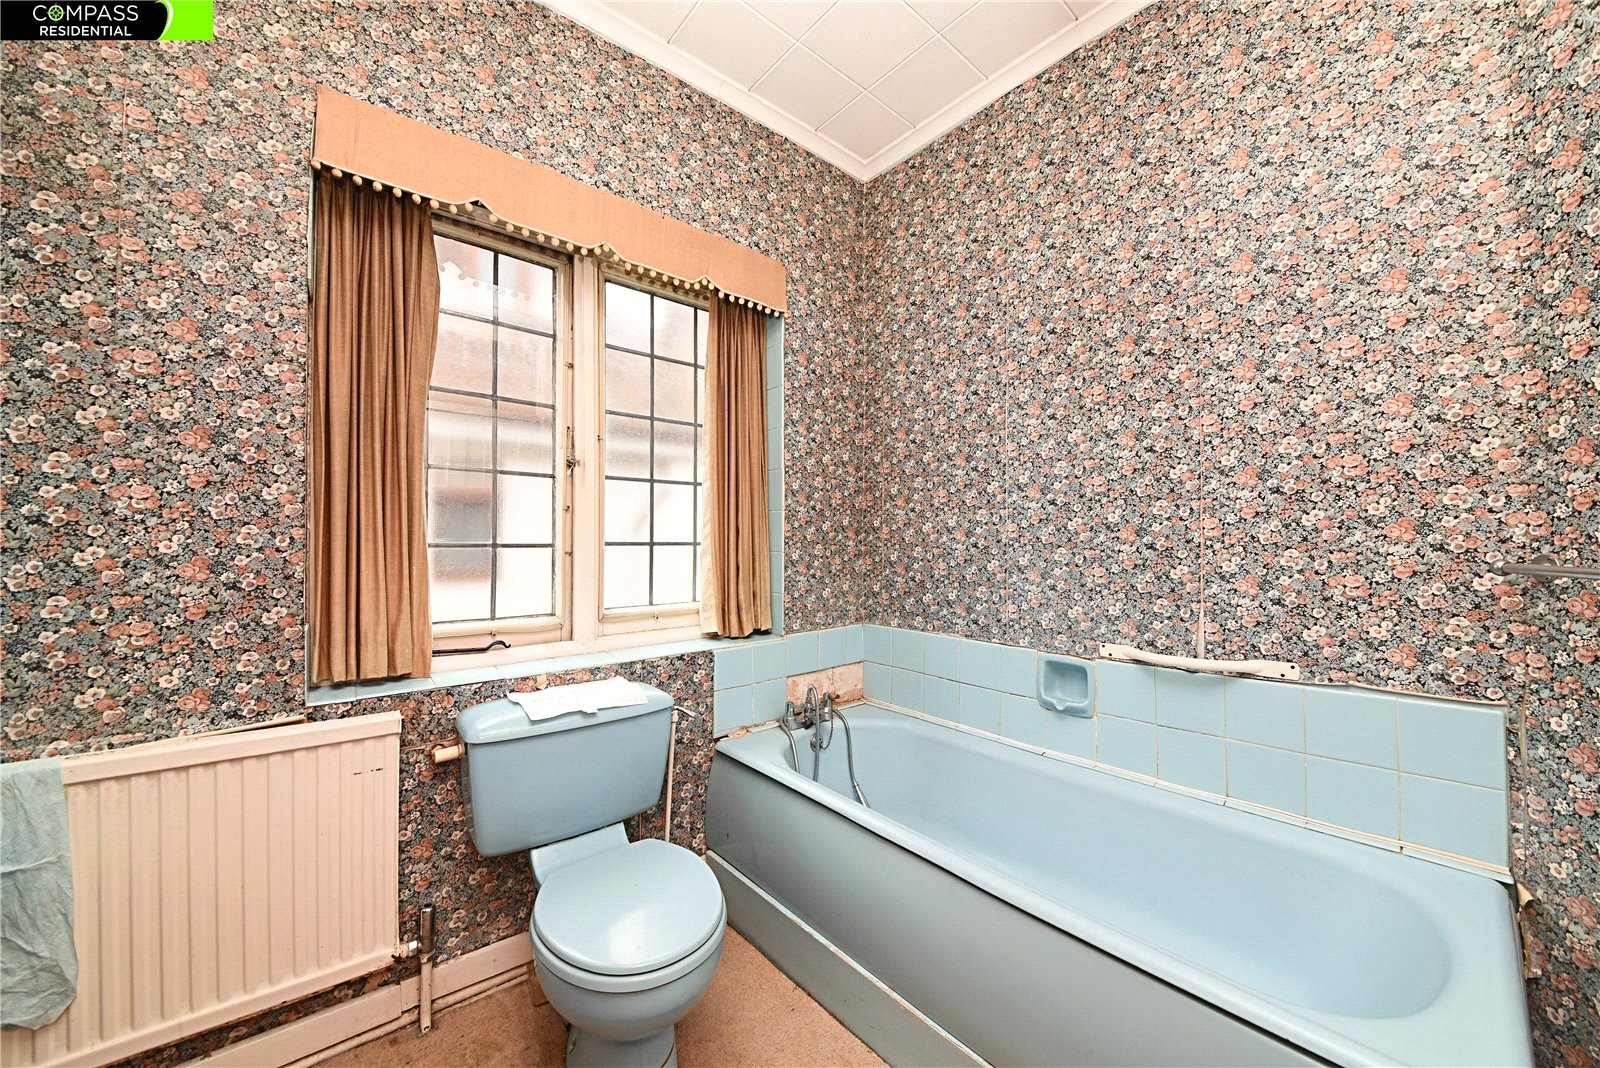 6 bed house for sale in Whetstone, N20 0NN  - Property Image 5